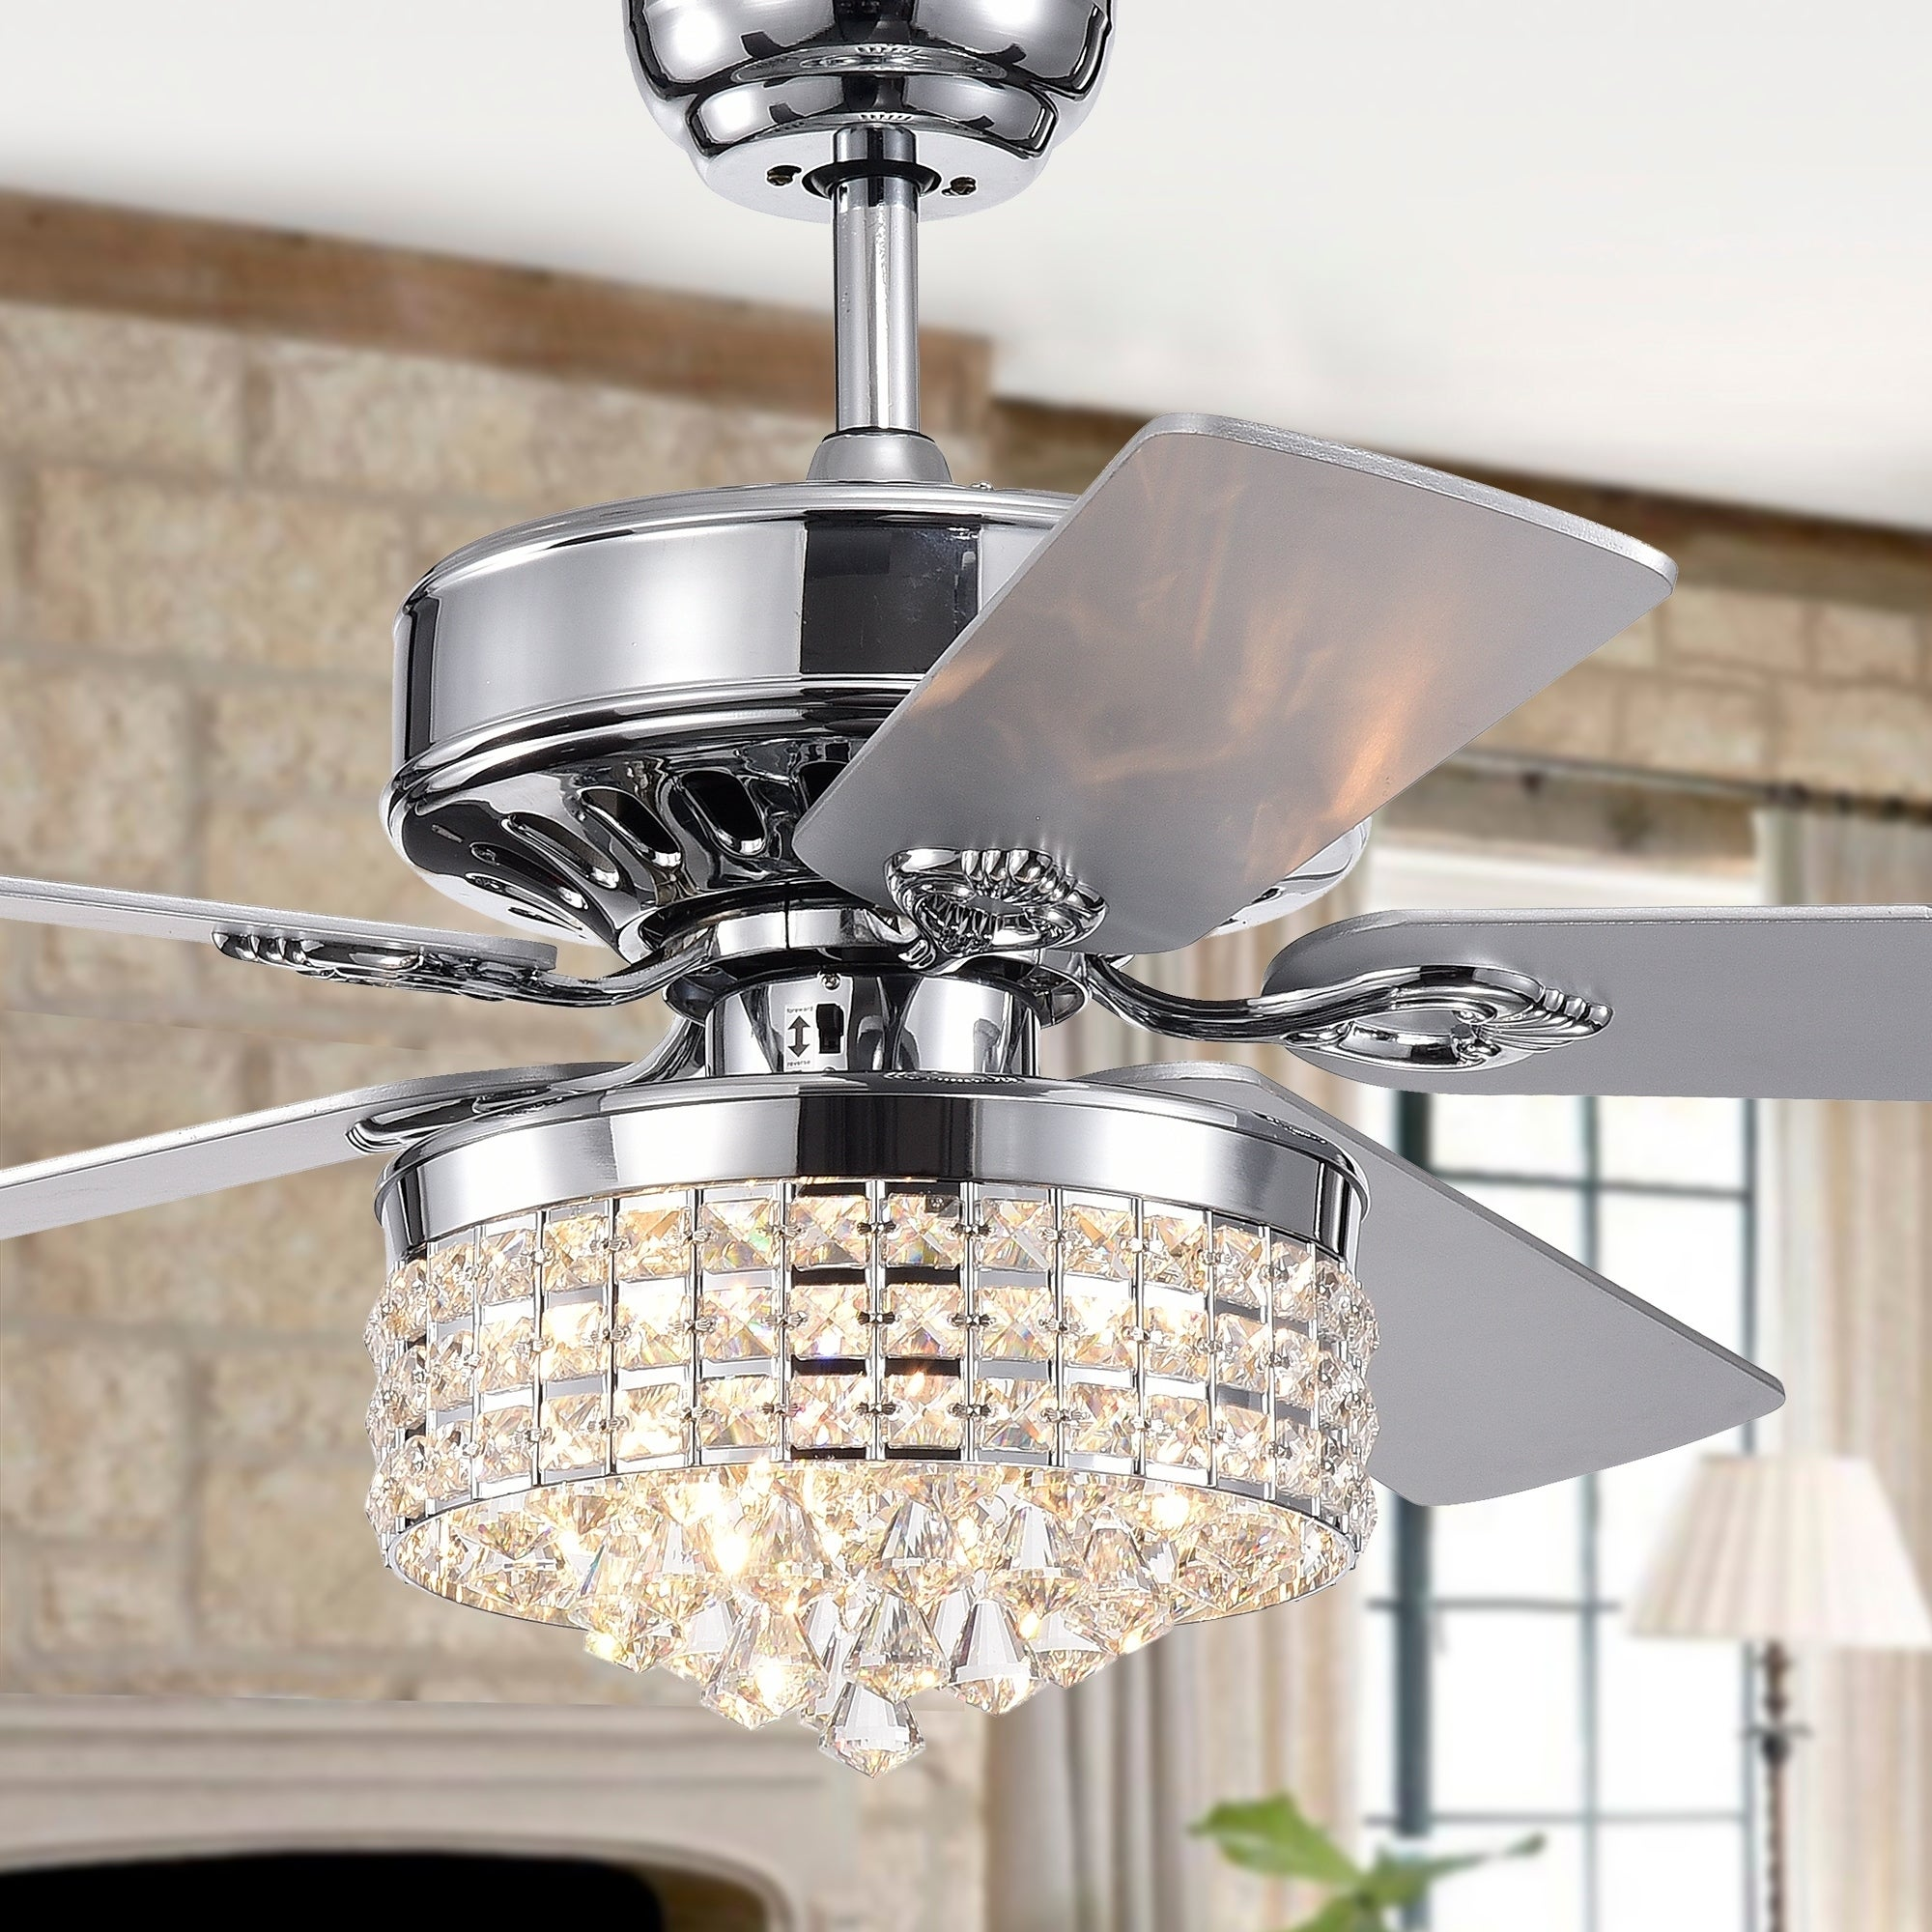 Letta 52-Inch 5-Blade Chrome Lighted Ceiling Fan Crystal Shade Optional  Remote Control (incl 2 Blade Colors)